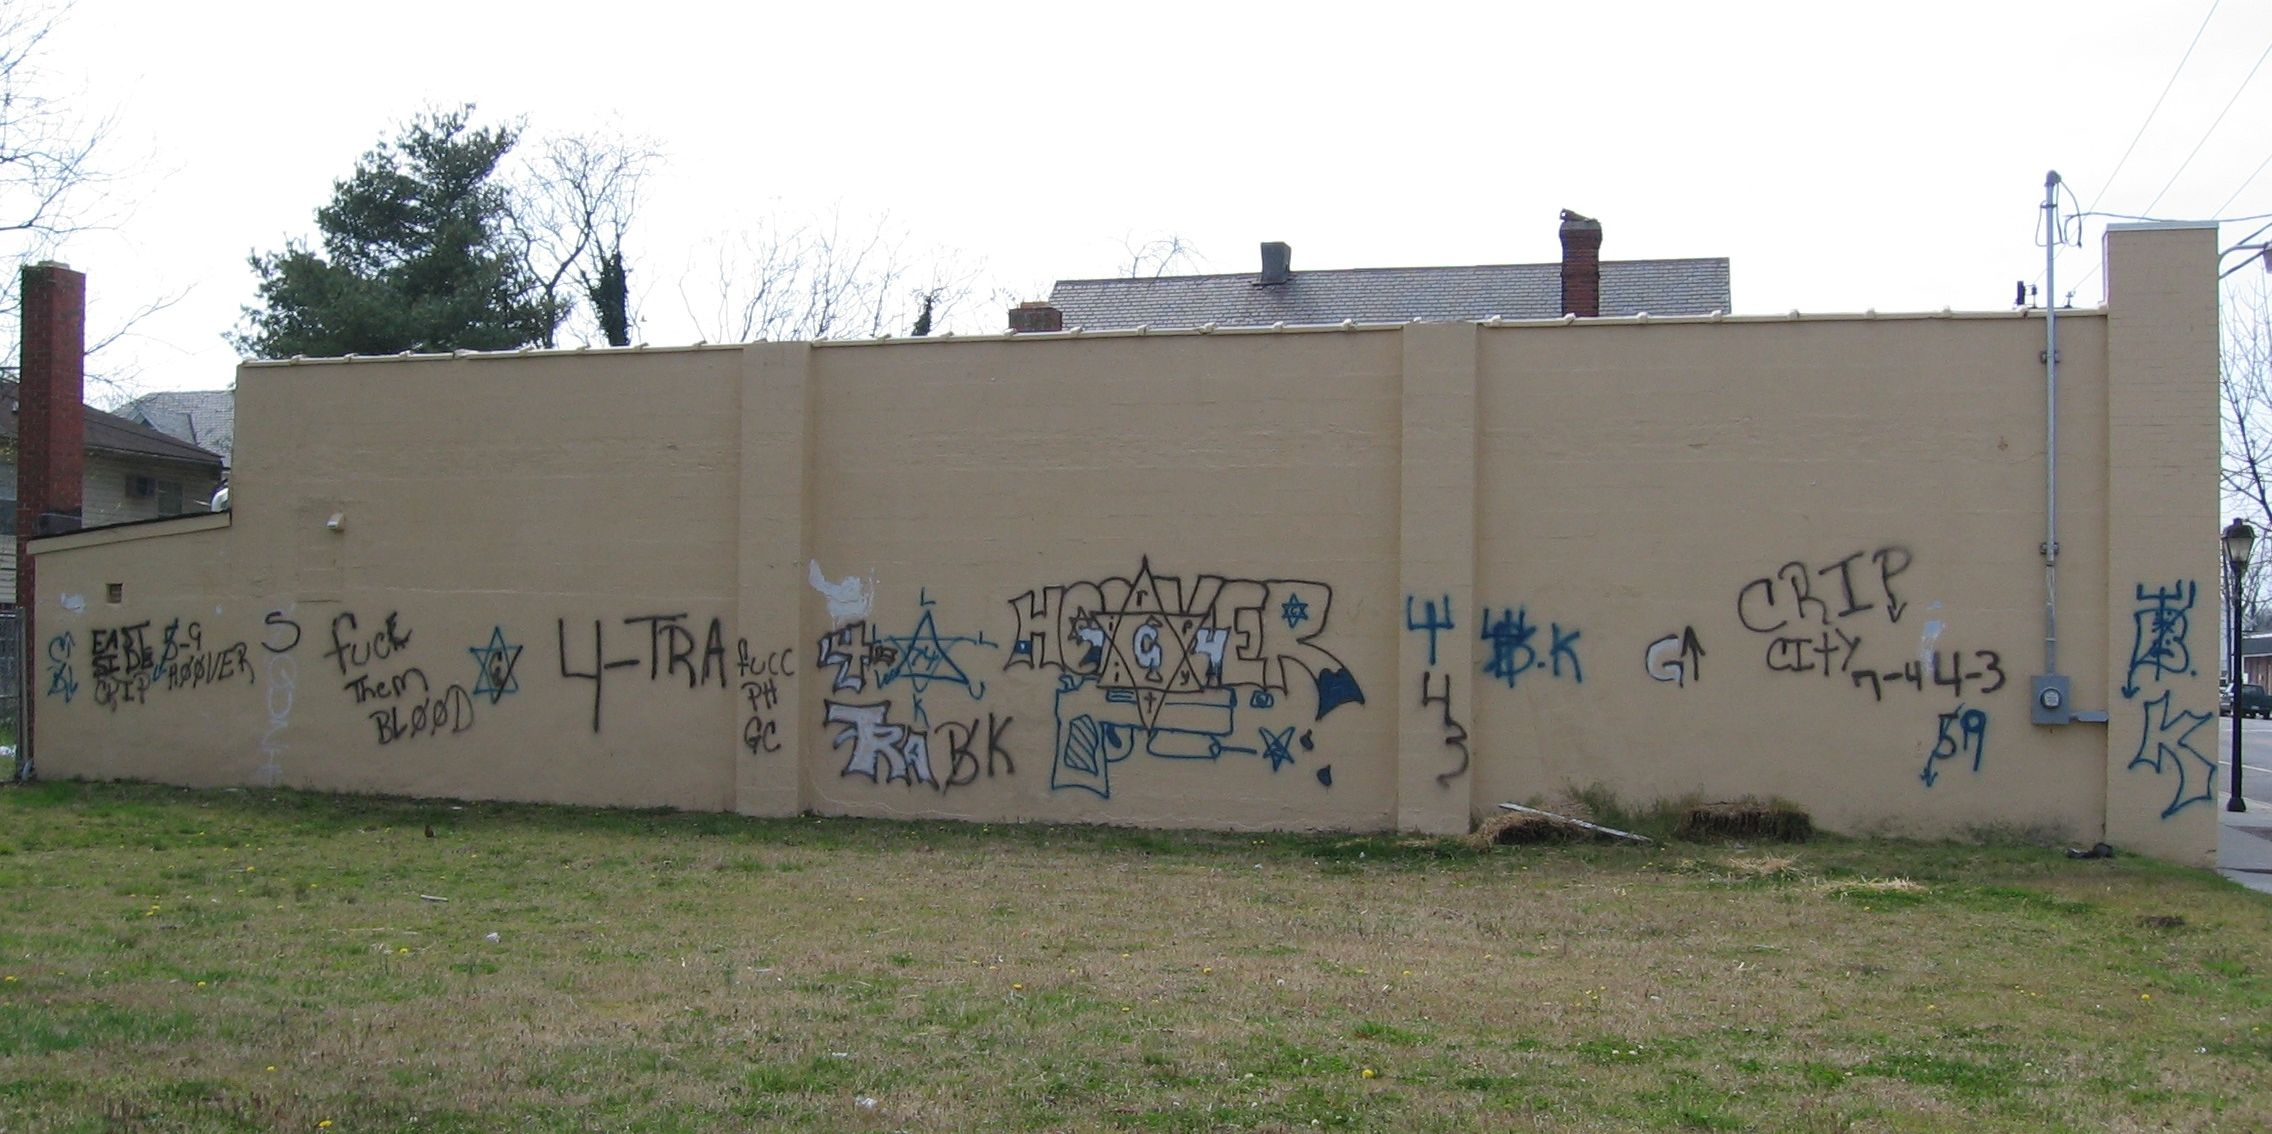 East Side Hoover Crip And Various Folk Nation Symbols 6 Point Star